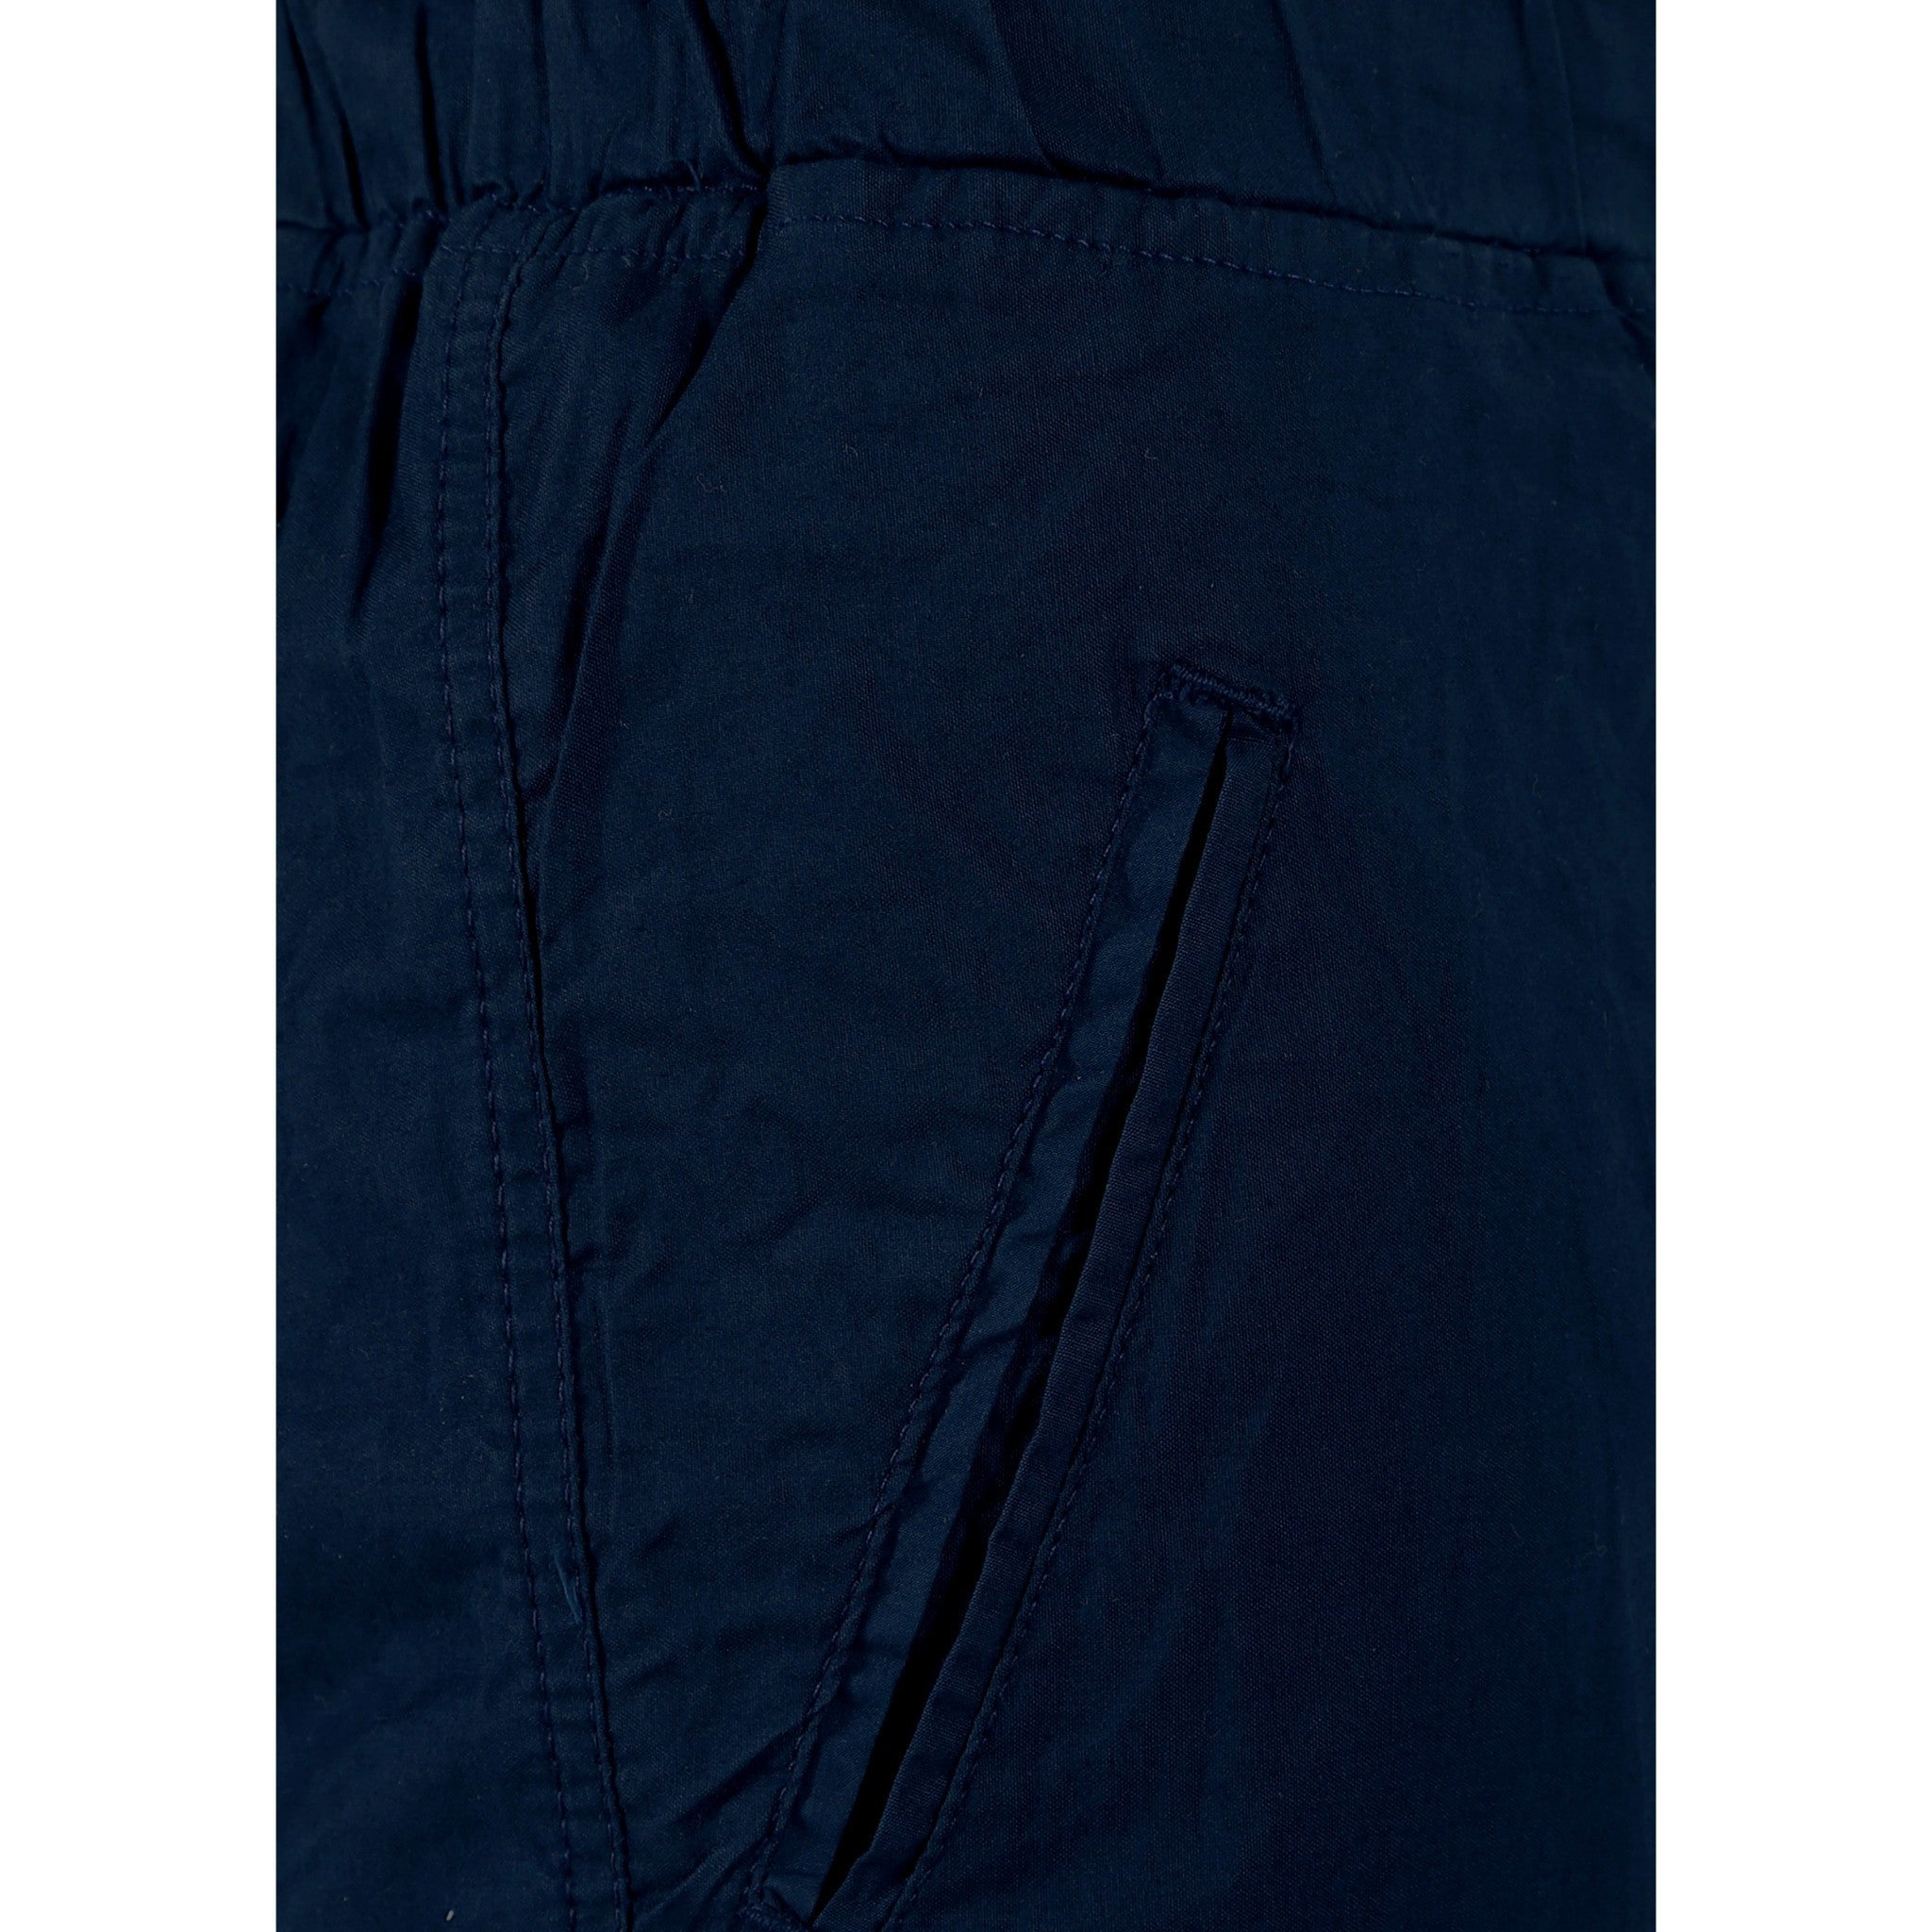 Uber Blacklue Cotton Trouser close up view